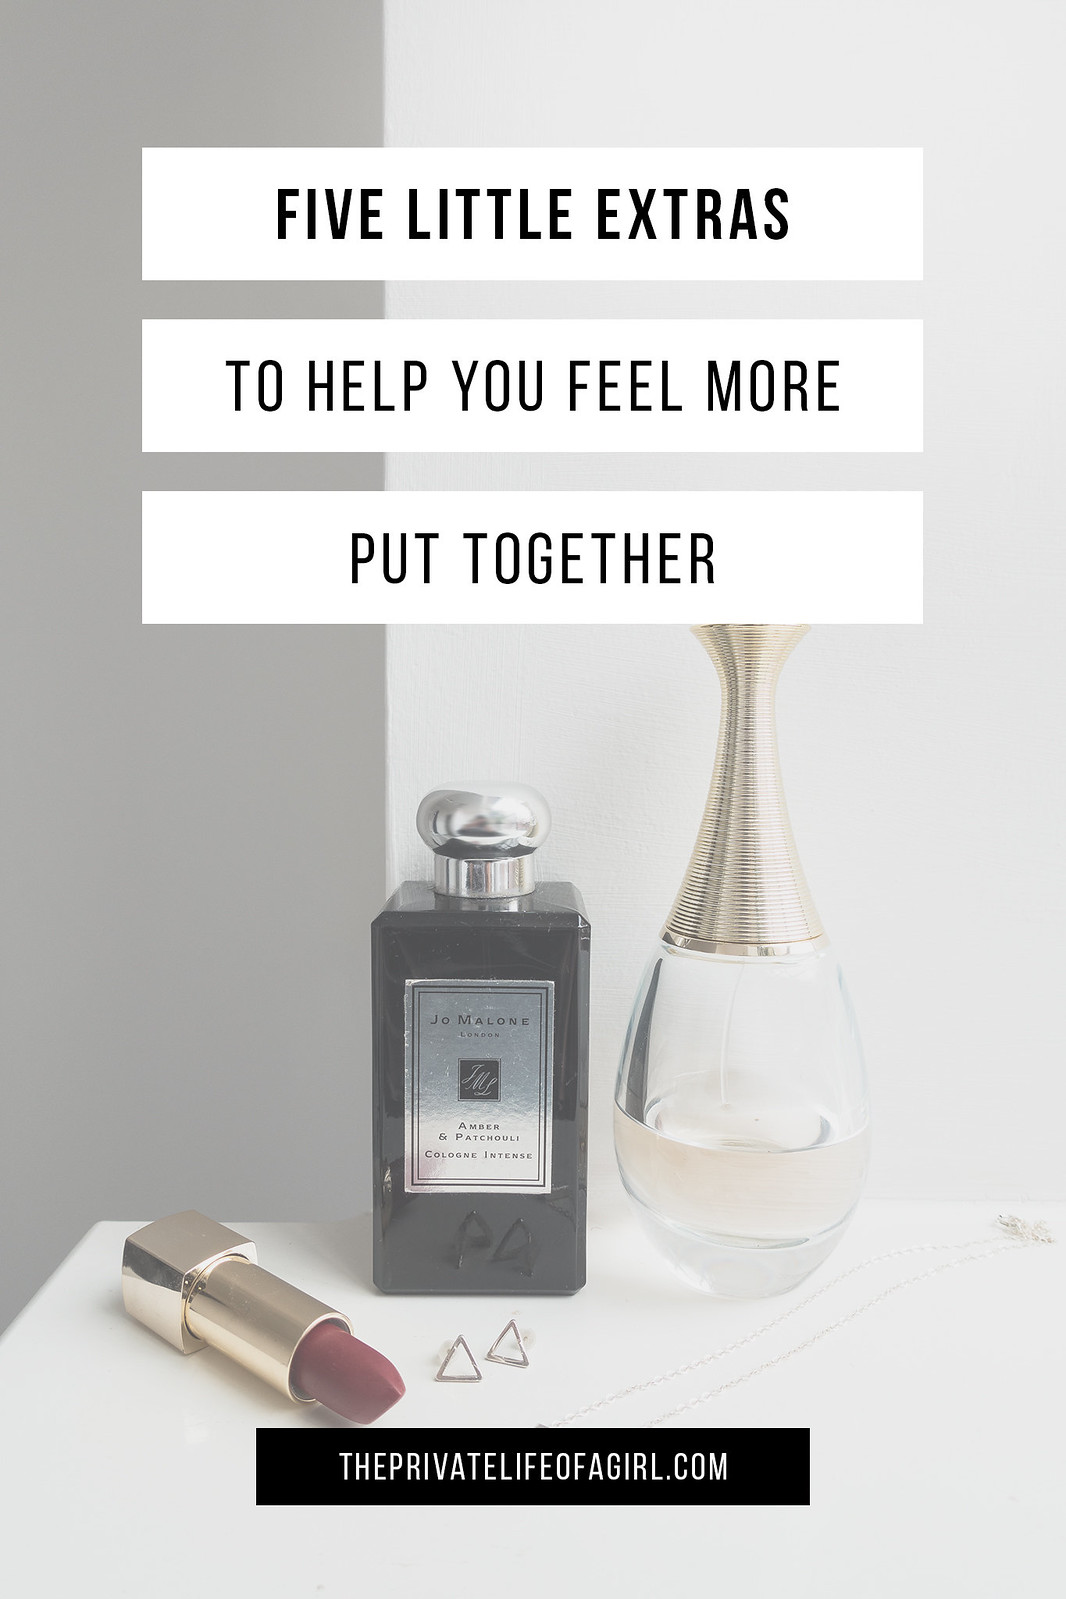 5 Little Extras To Help You Feel More Put Together